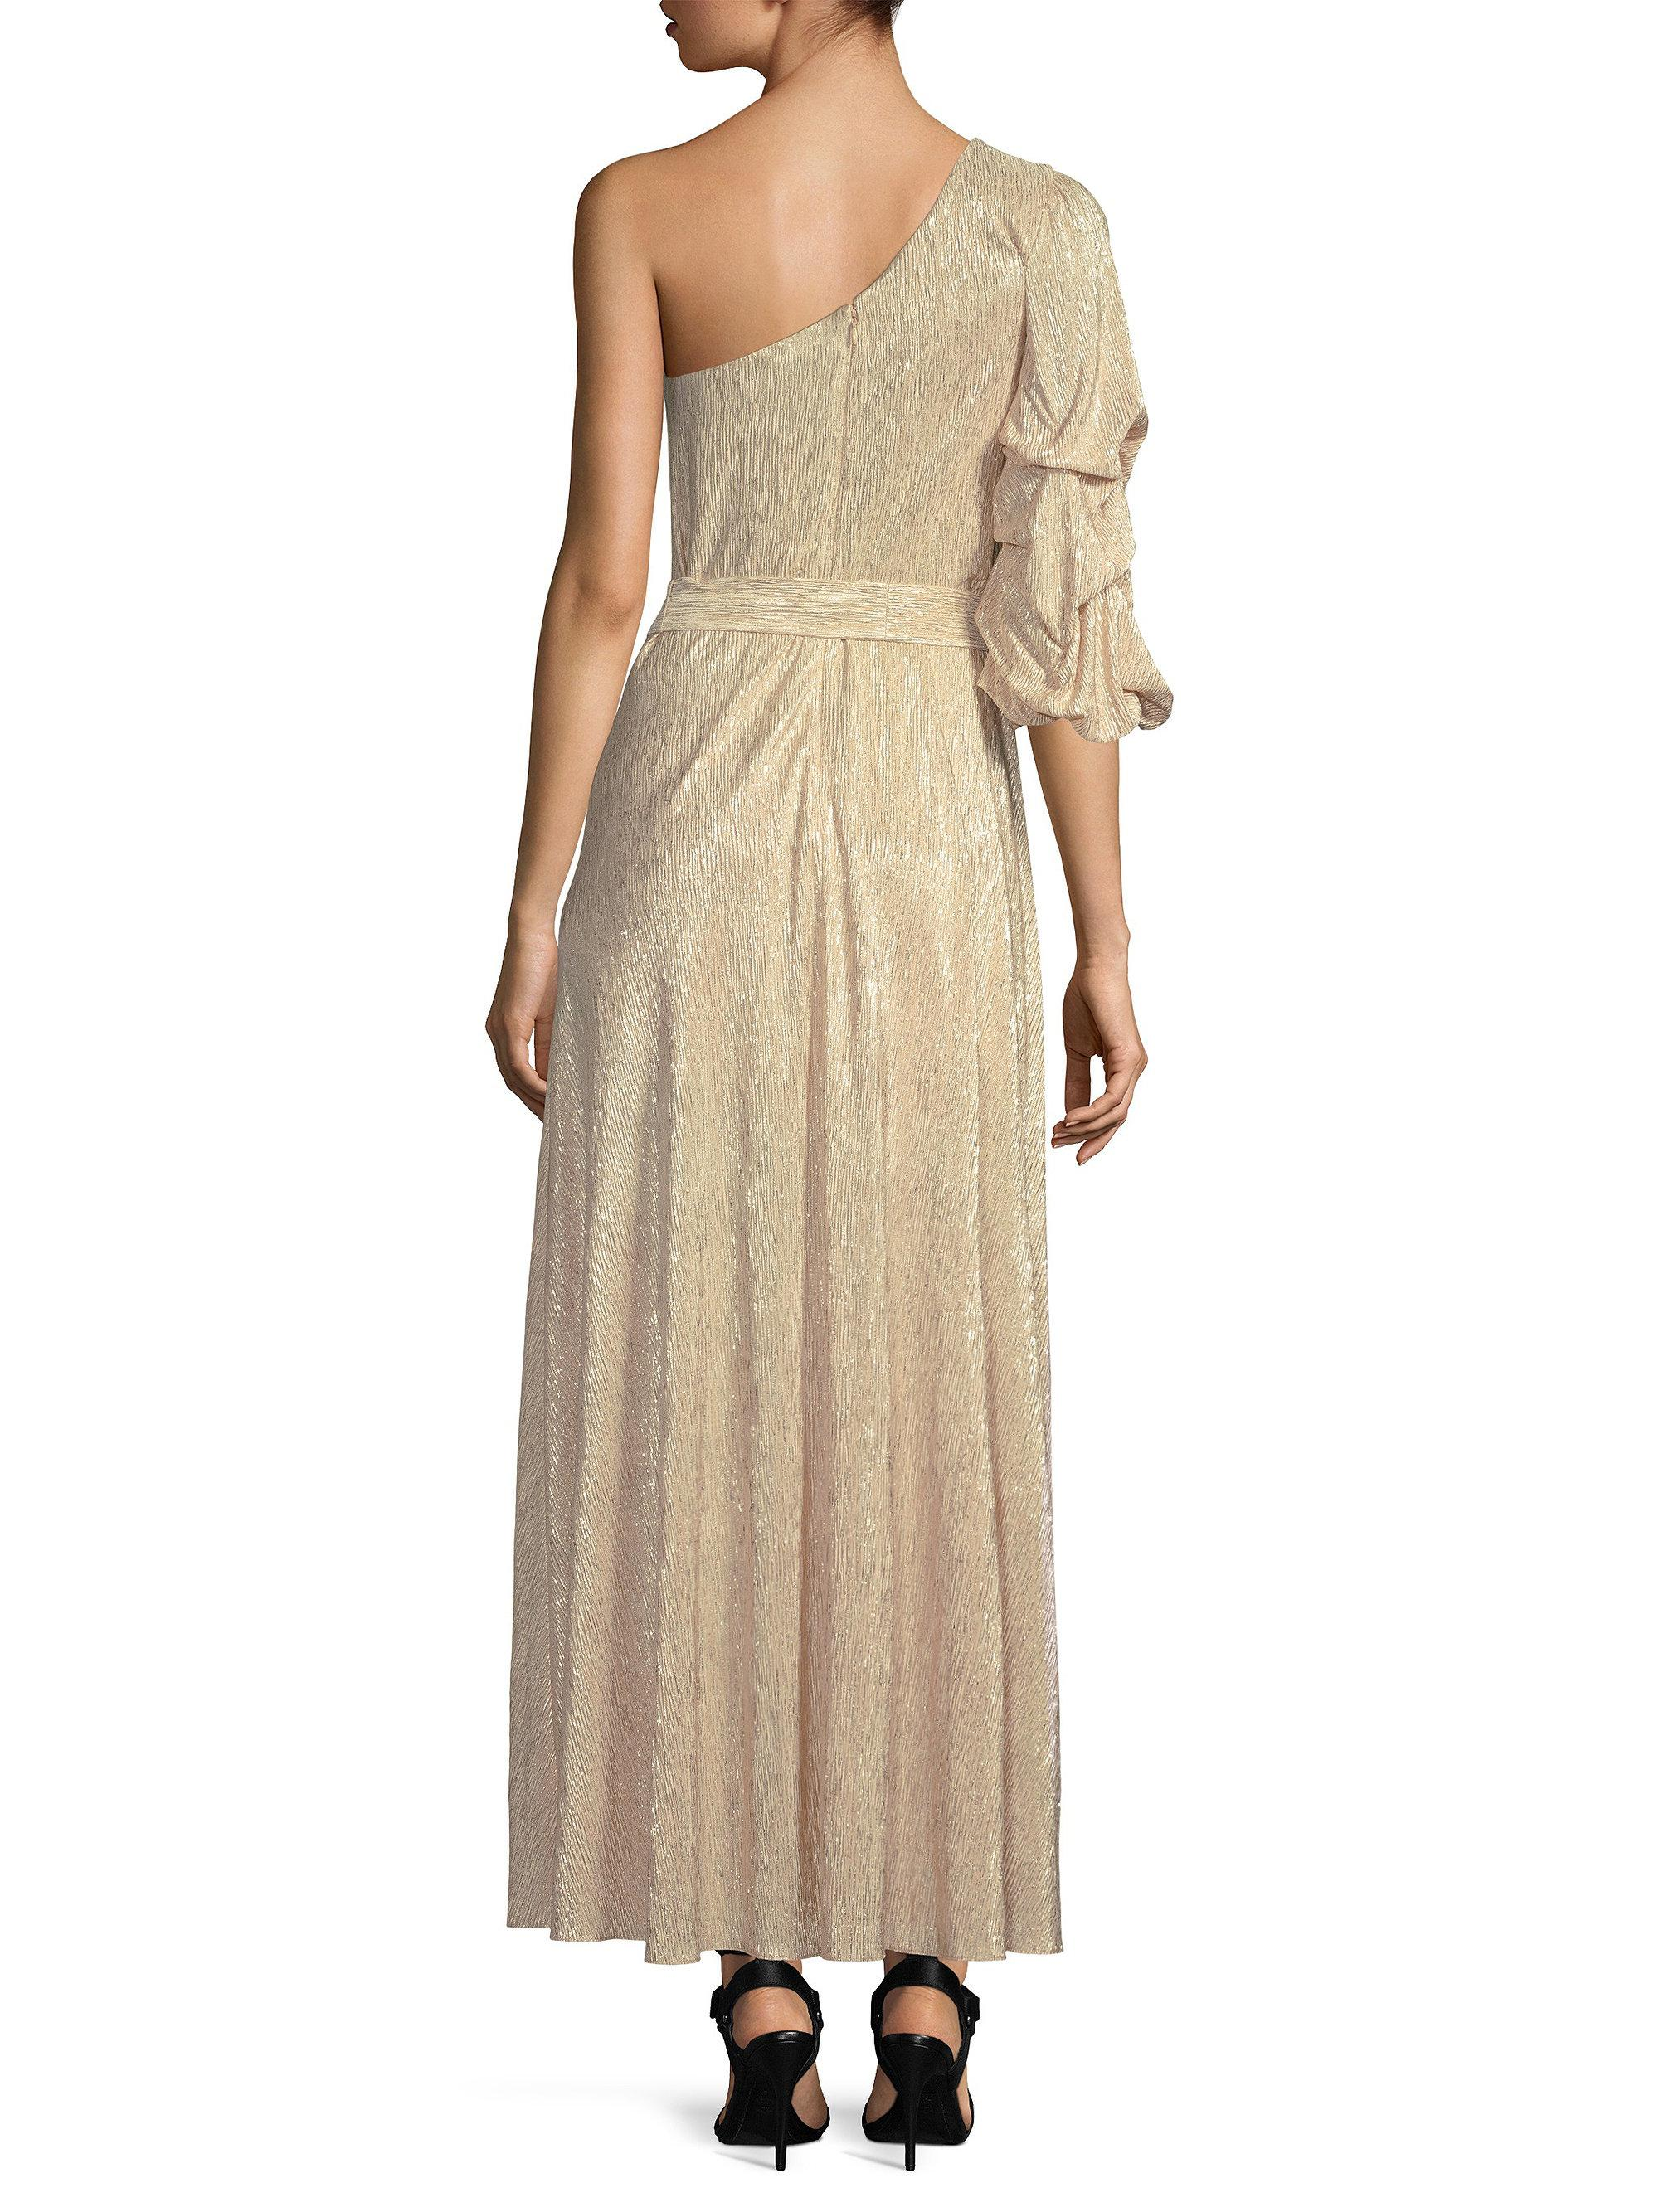 dc59f844022 Alice + Olivia Jeanie One Shoulder Maxi Dress in Natural - Lyst